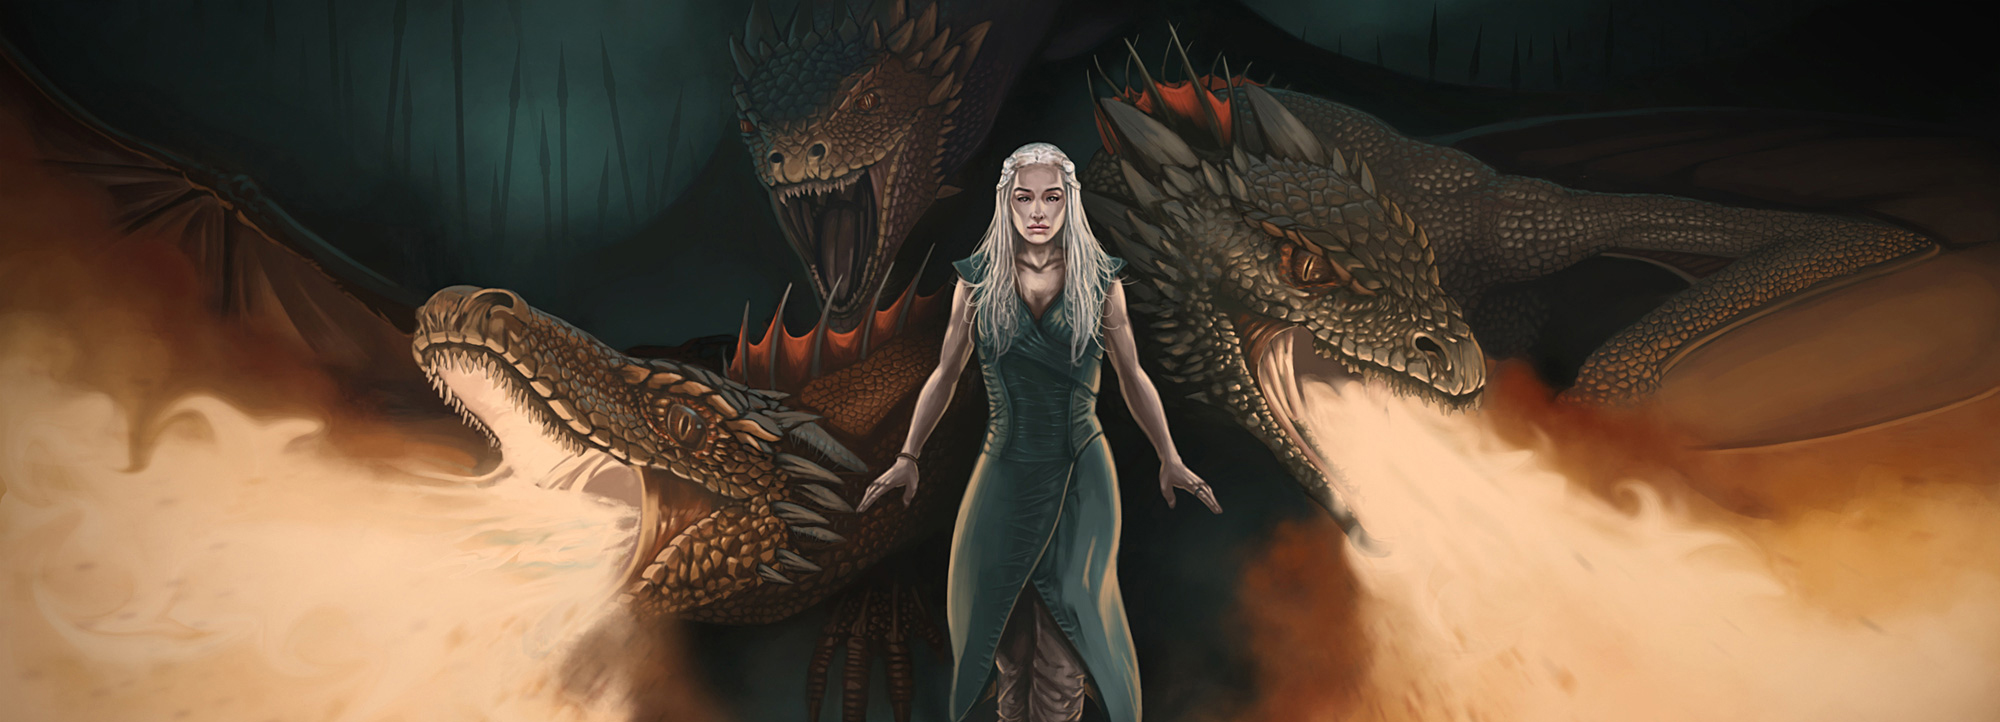 Power of Khaleesi